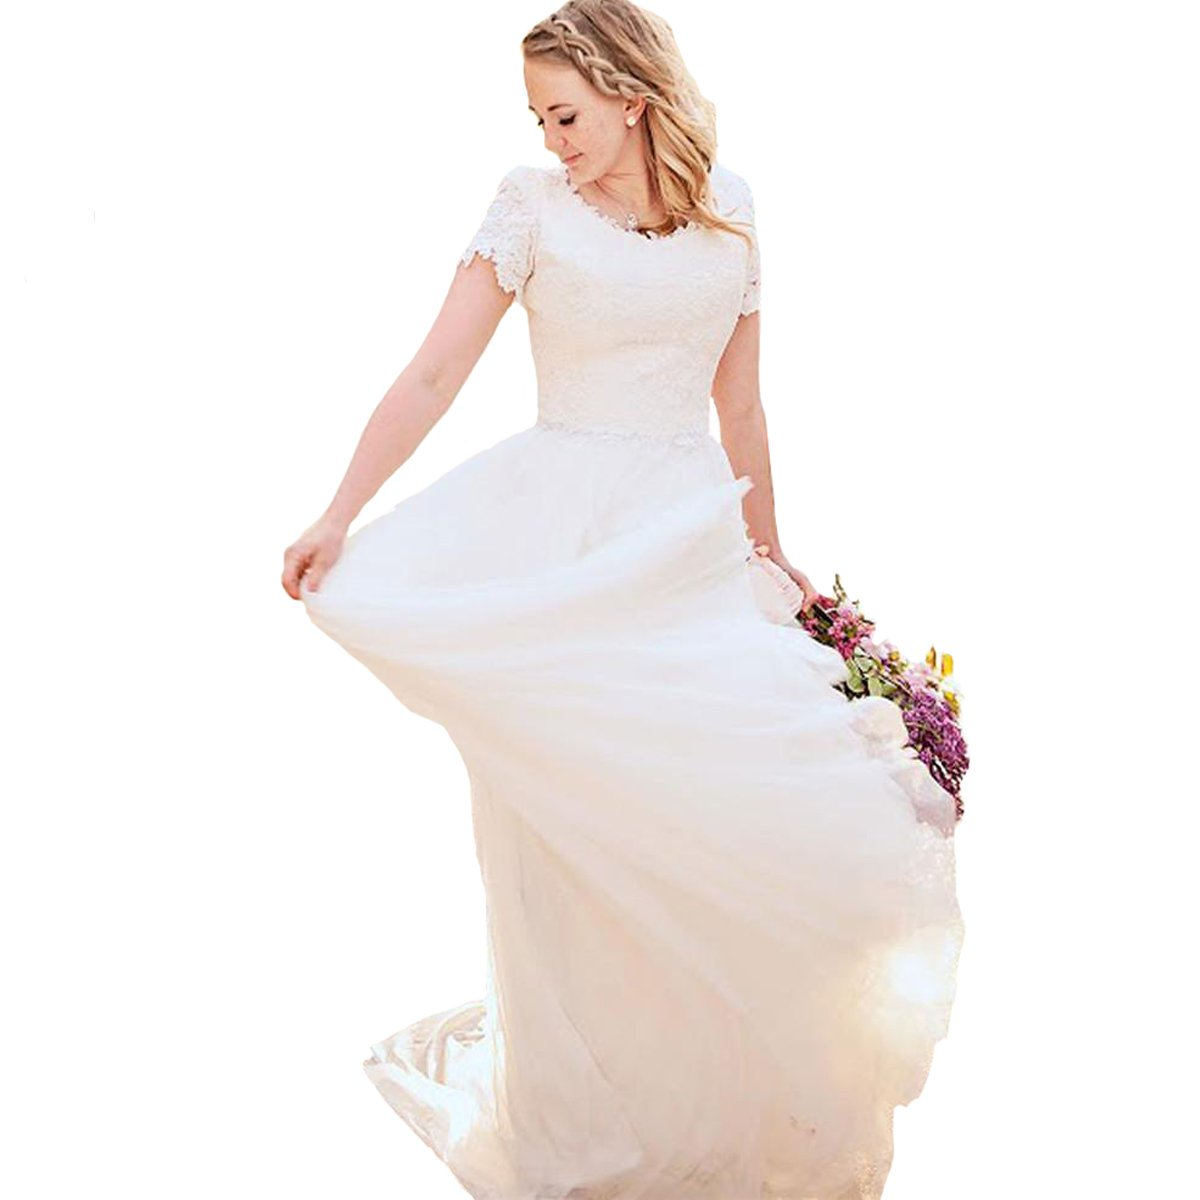 Yuxin Short Sleeves Wedding Dress for Bride 2018 Appliques A Line Outdoor Country Bridal Dresses Party Gown